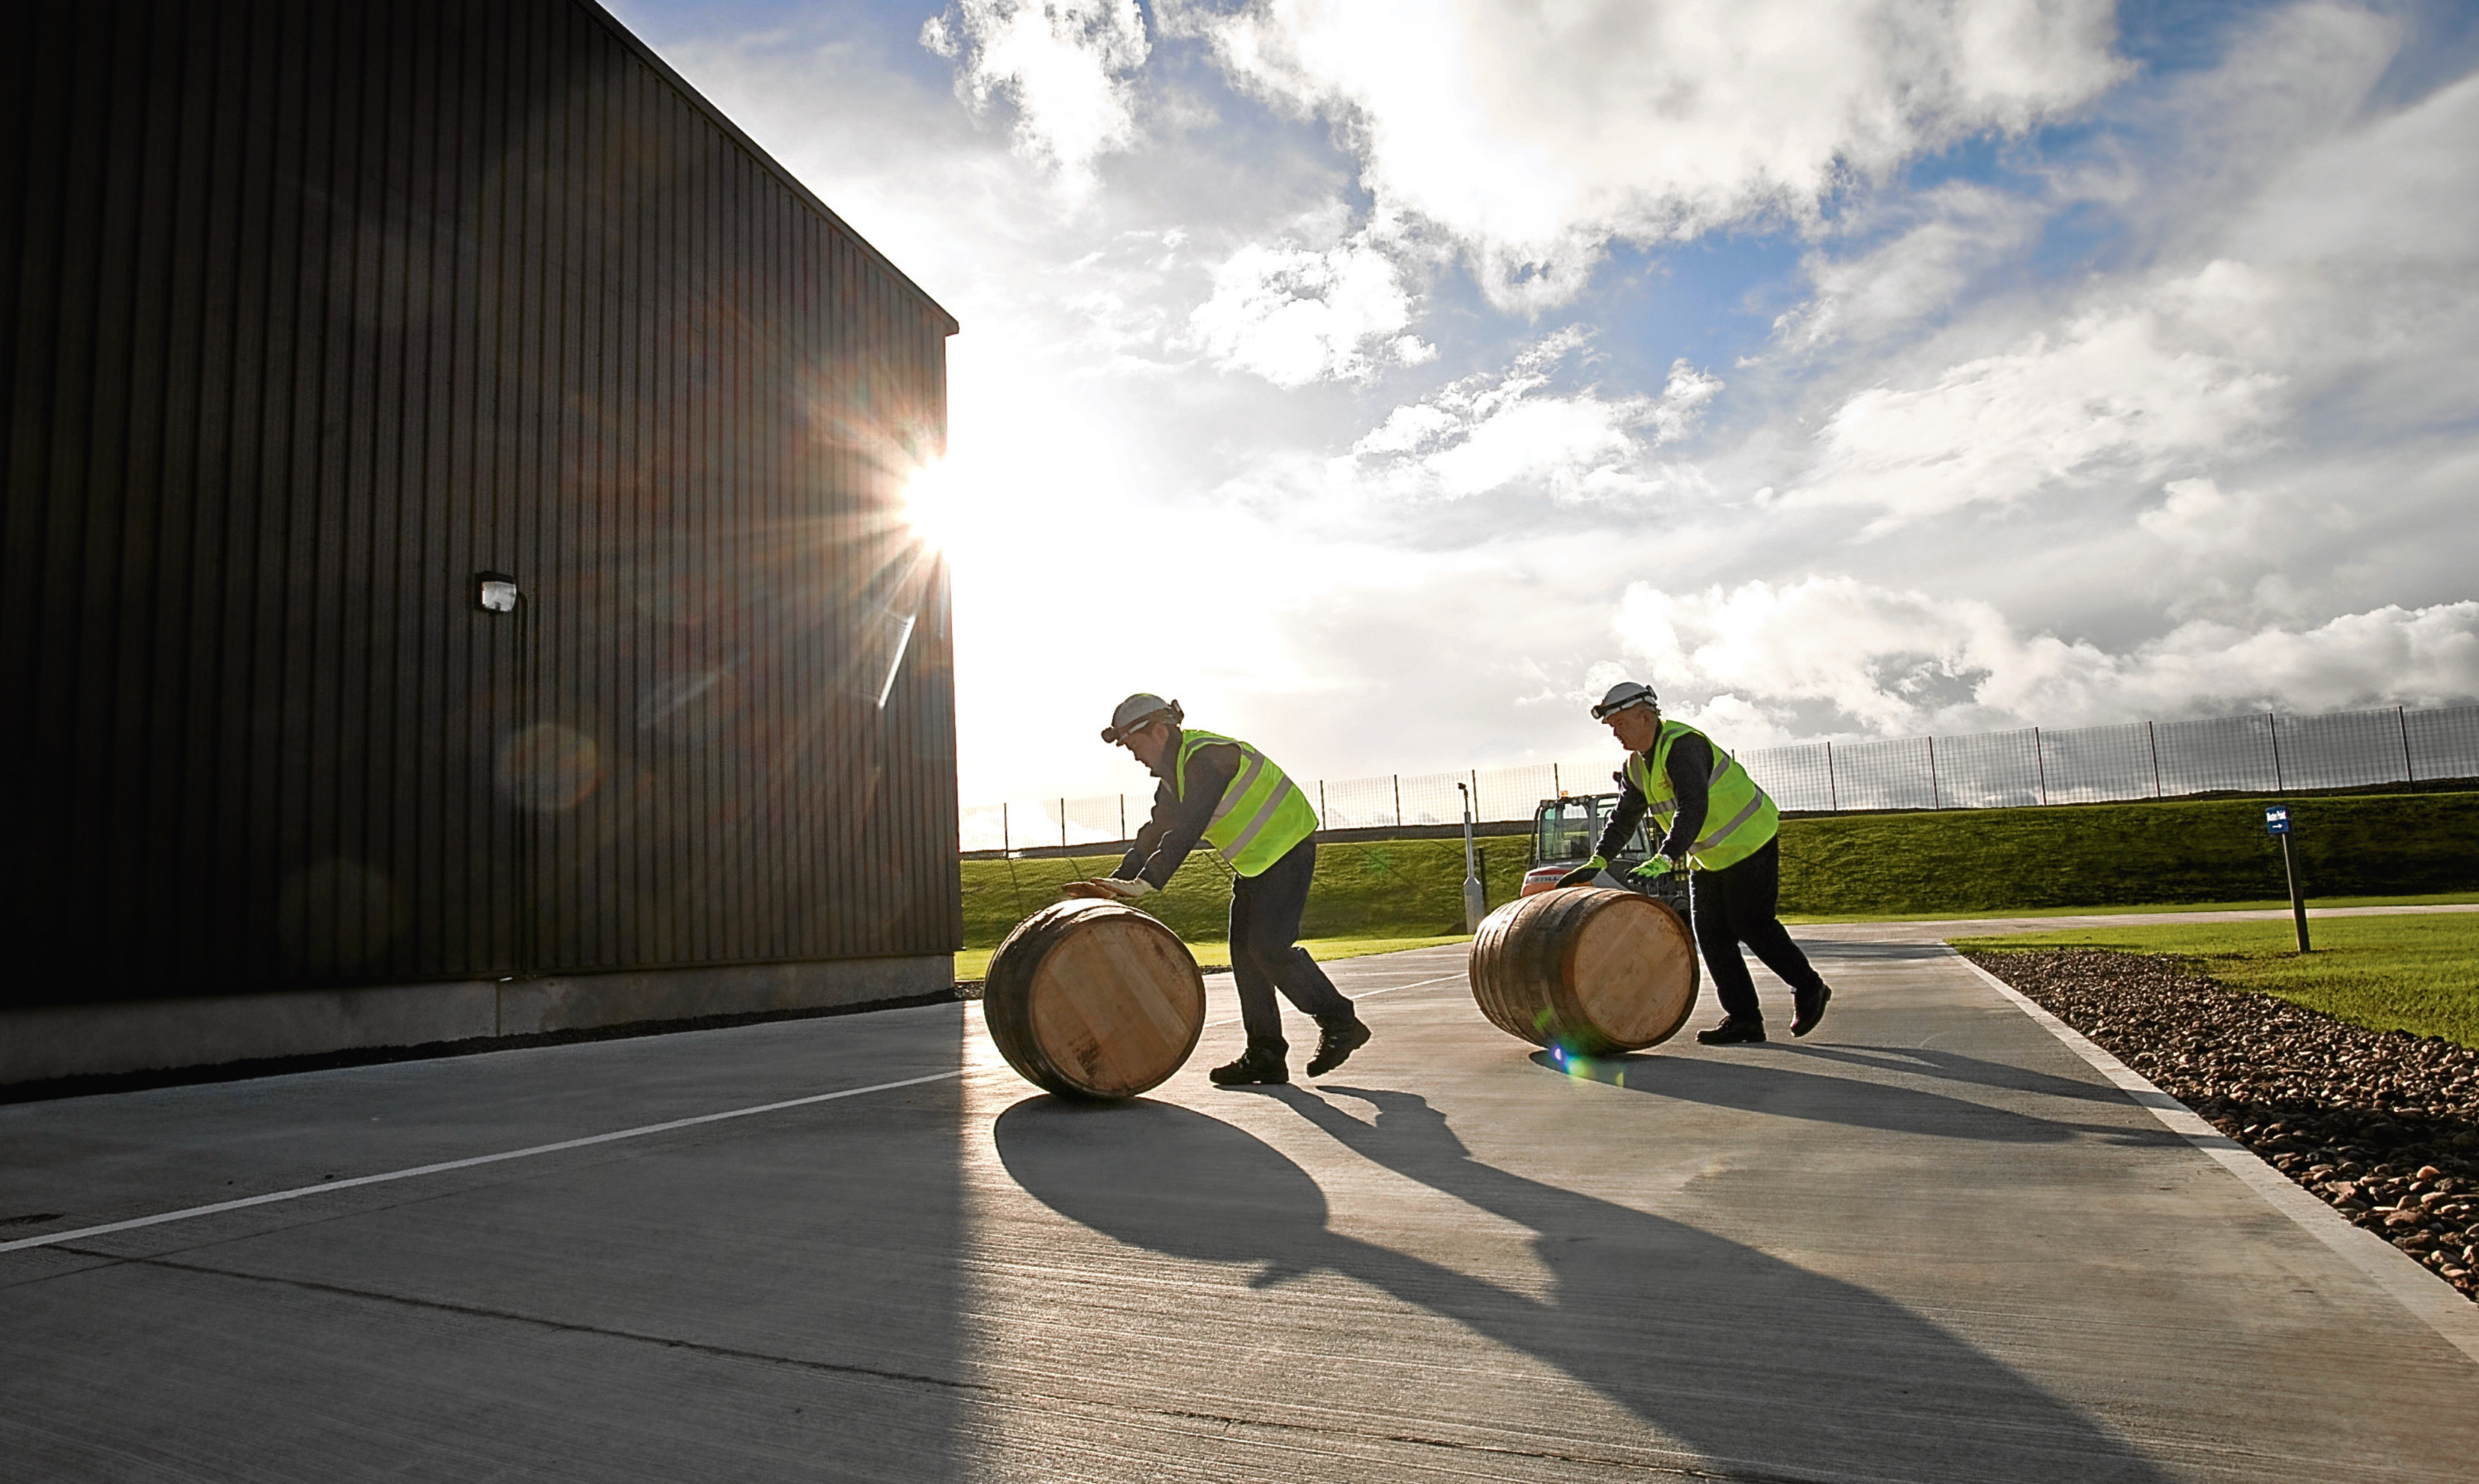 Whisky being laid down to mature at Diageo's Cluny bond near Kirkcaldy